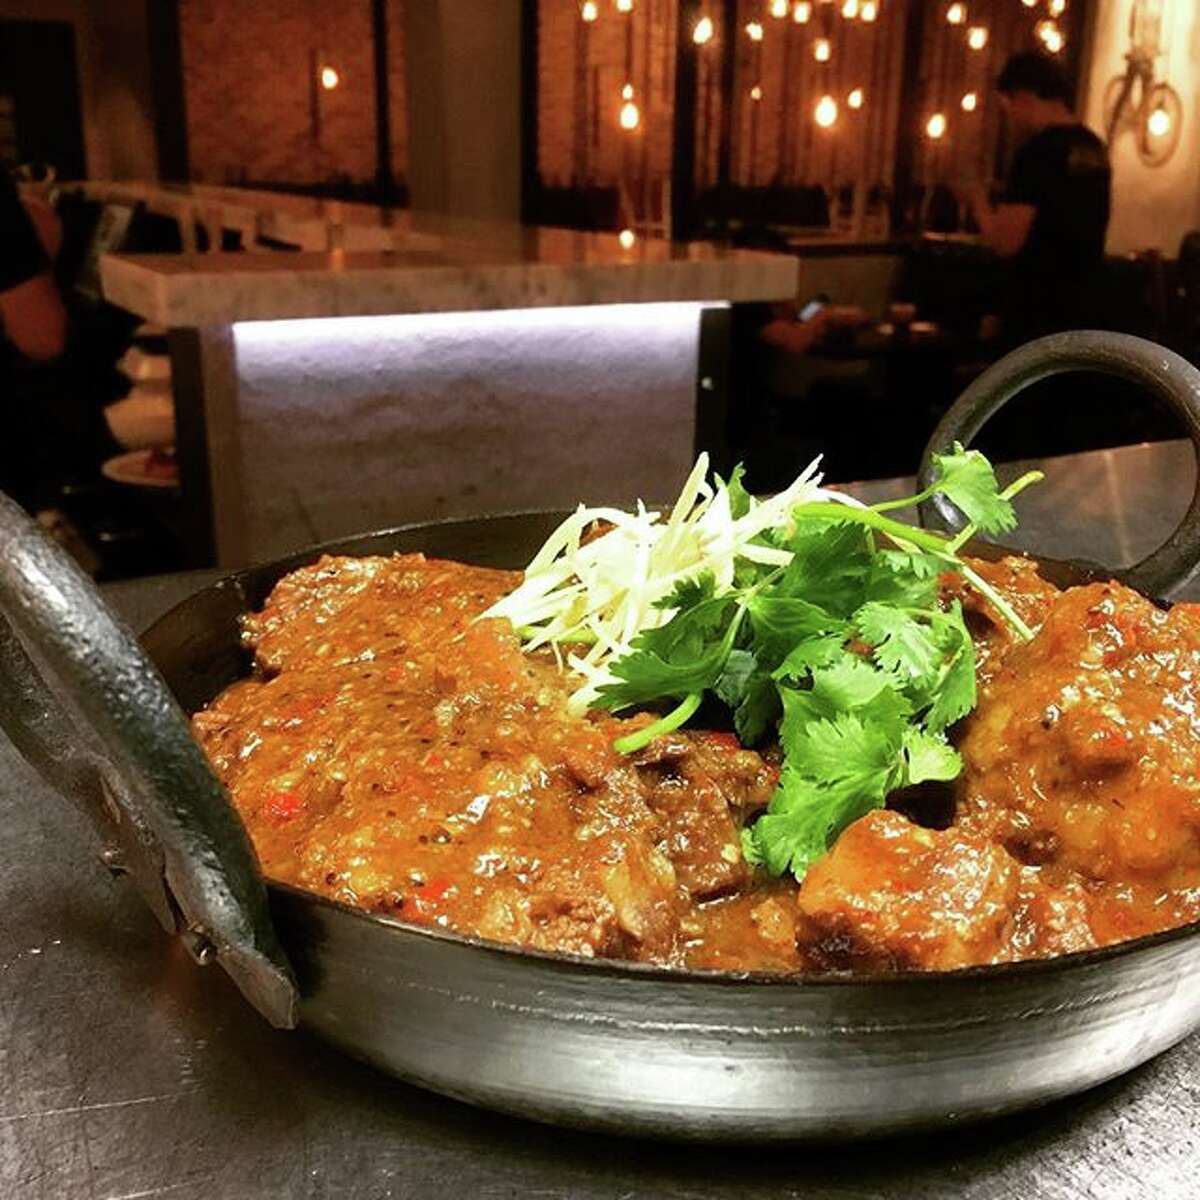 Night Market, a new curry and grill restaurant, is set to open Dec. 6 at 9630 Clarewood in Chinatown. This is a new concept from restaurateur Mike Tran (Tiger Den, Mein) who is working with chef Rikesh Patel. Shown: masala oxtail.